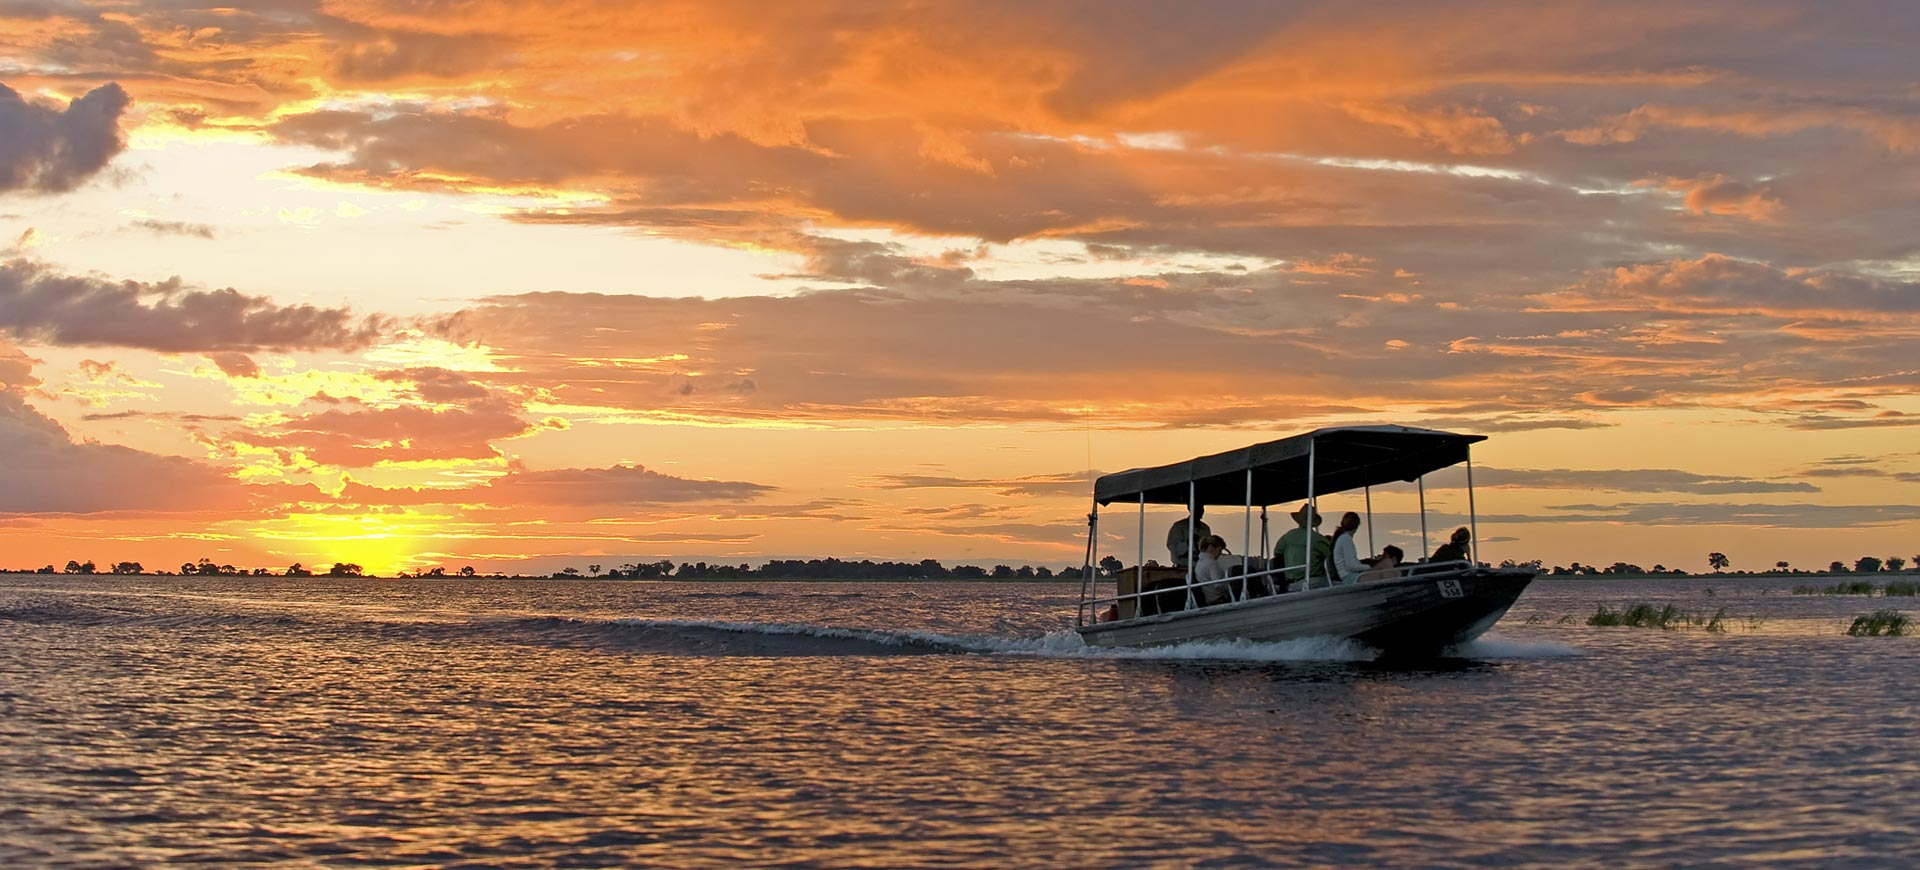 Chobe Chilwero River Cruise